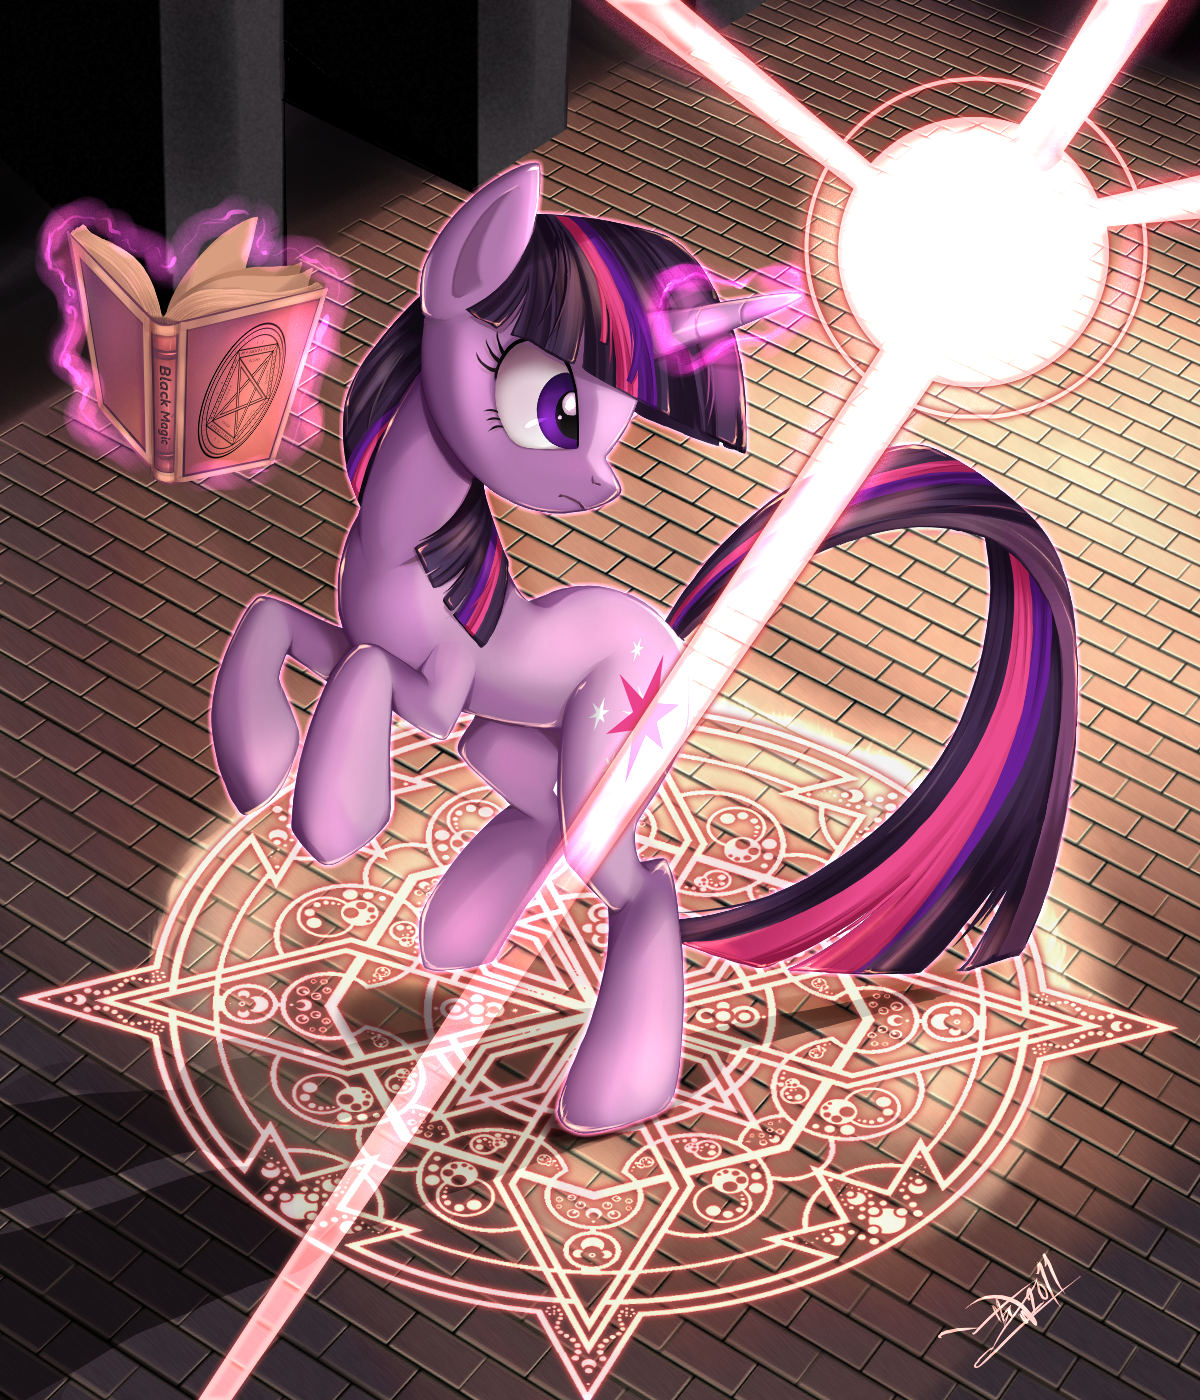 twilight_by_ponykillerx-d4kd8wj.png